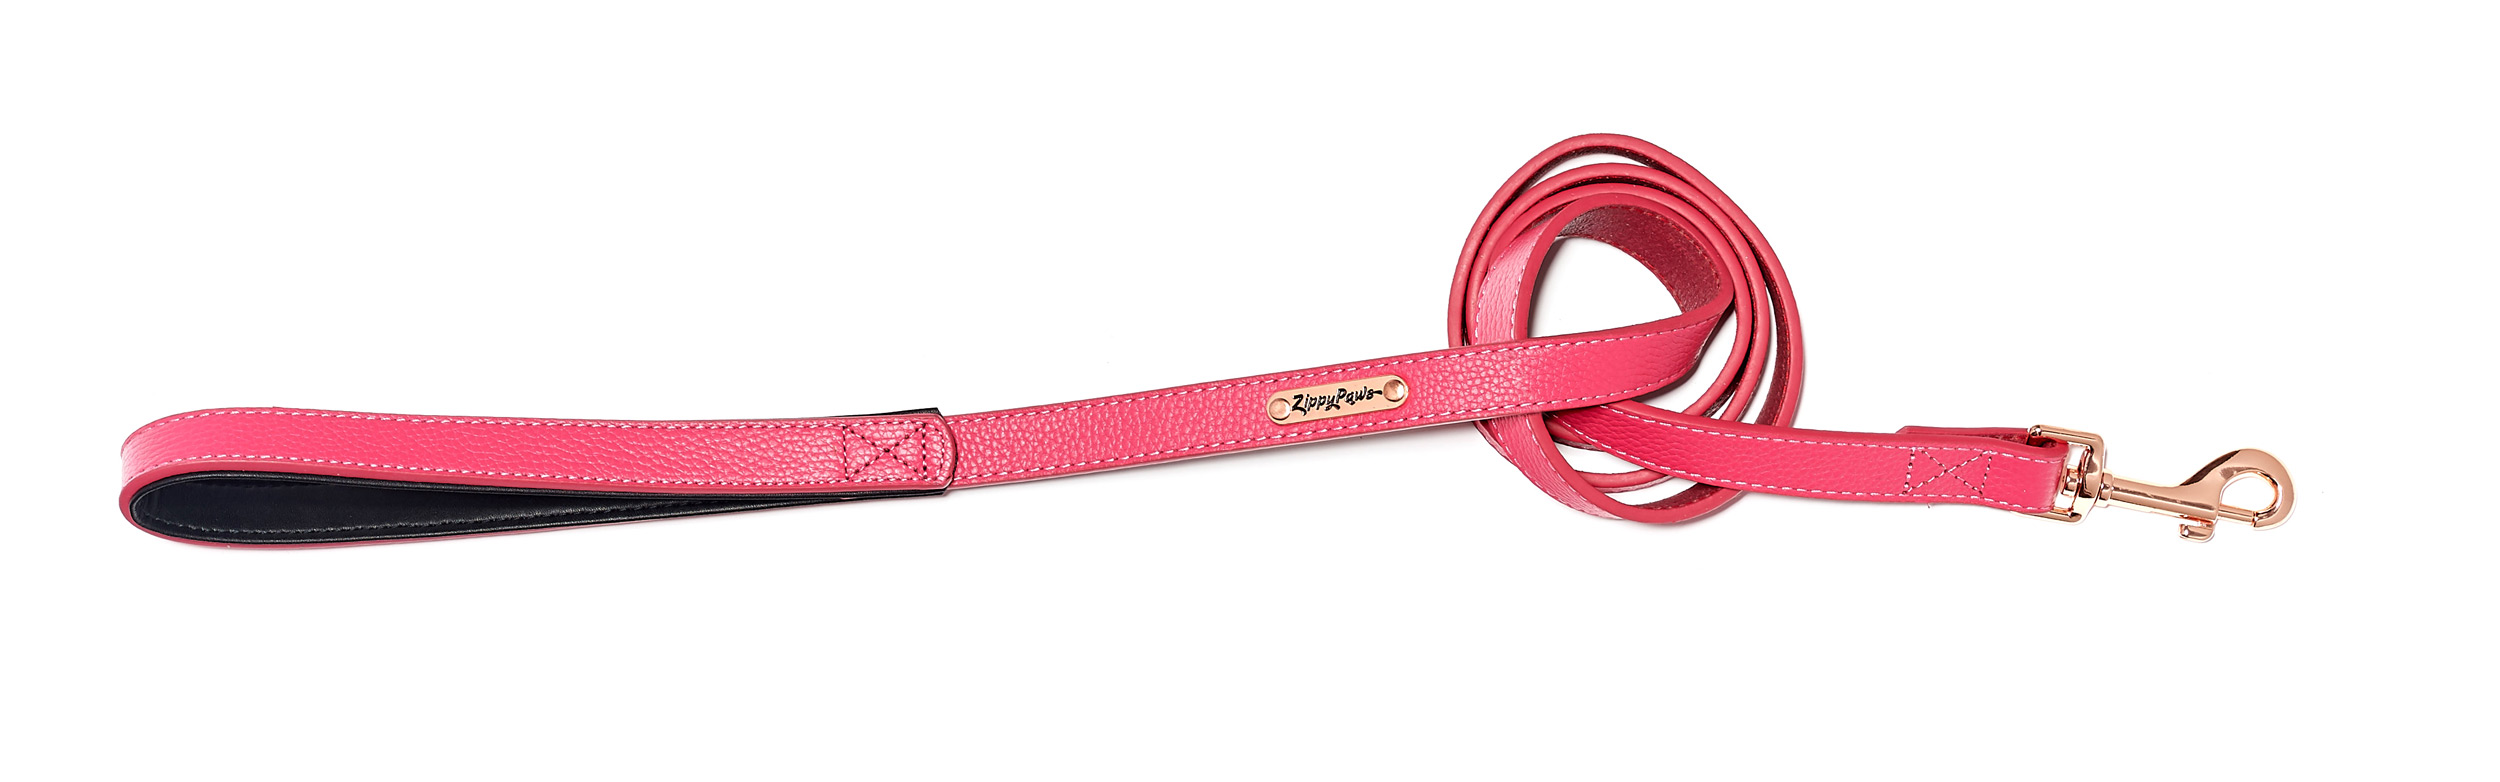 ZippyPaws Legacy Collars & Leashes